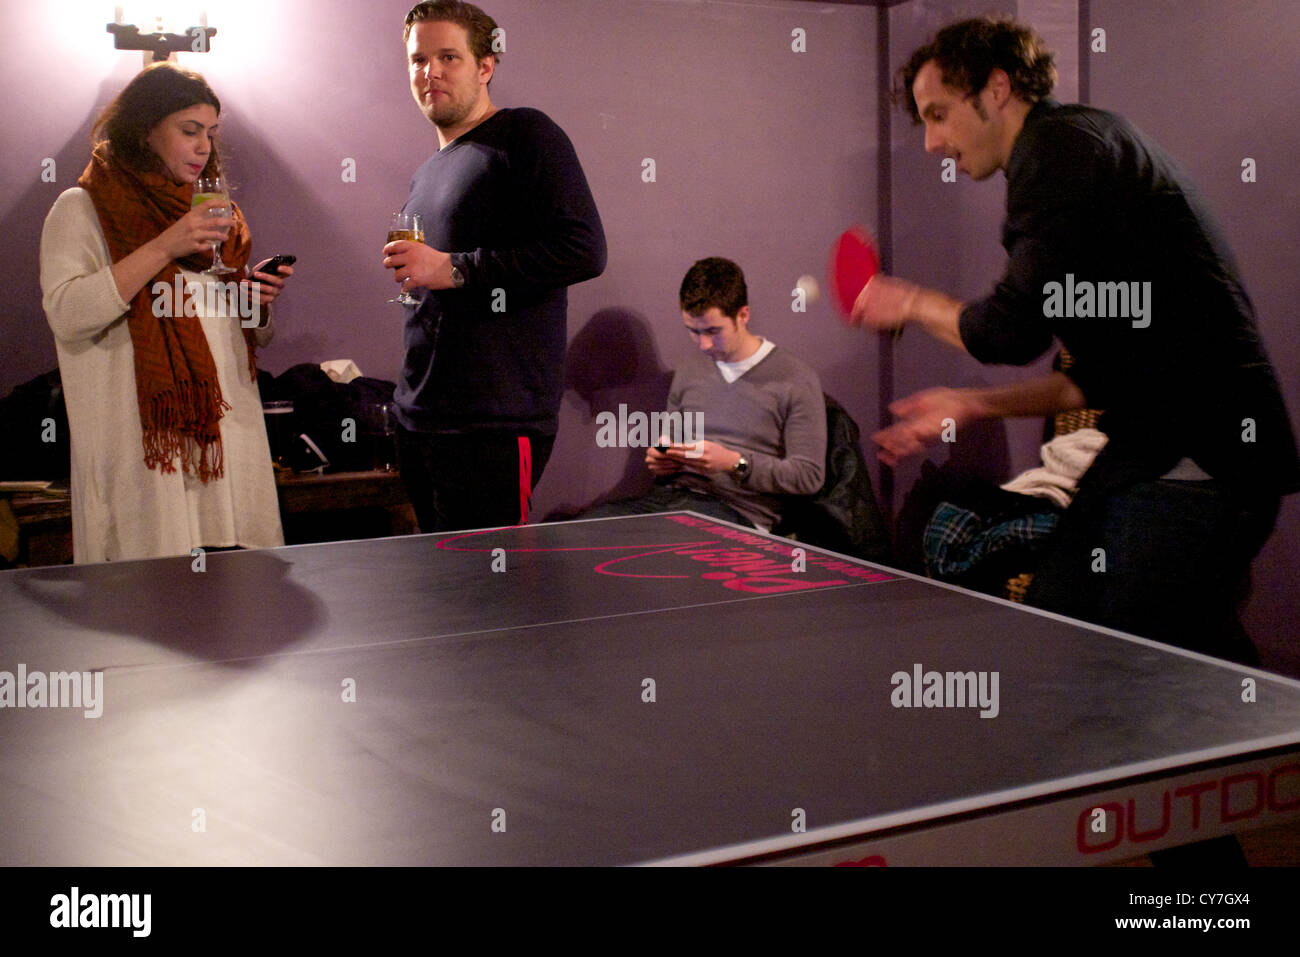 Ping Pong in London. Playing table tennis in a pub in the trendy Clerkenwell area of London. - Stock Image